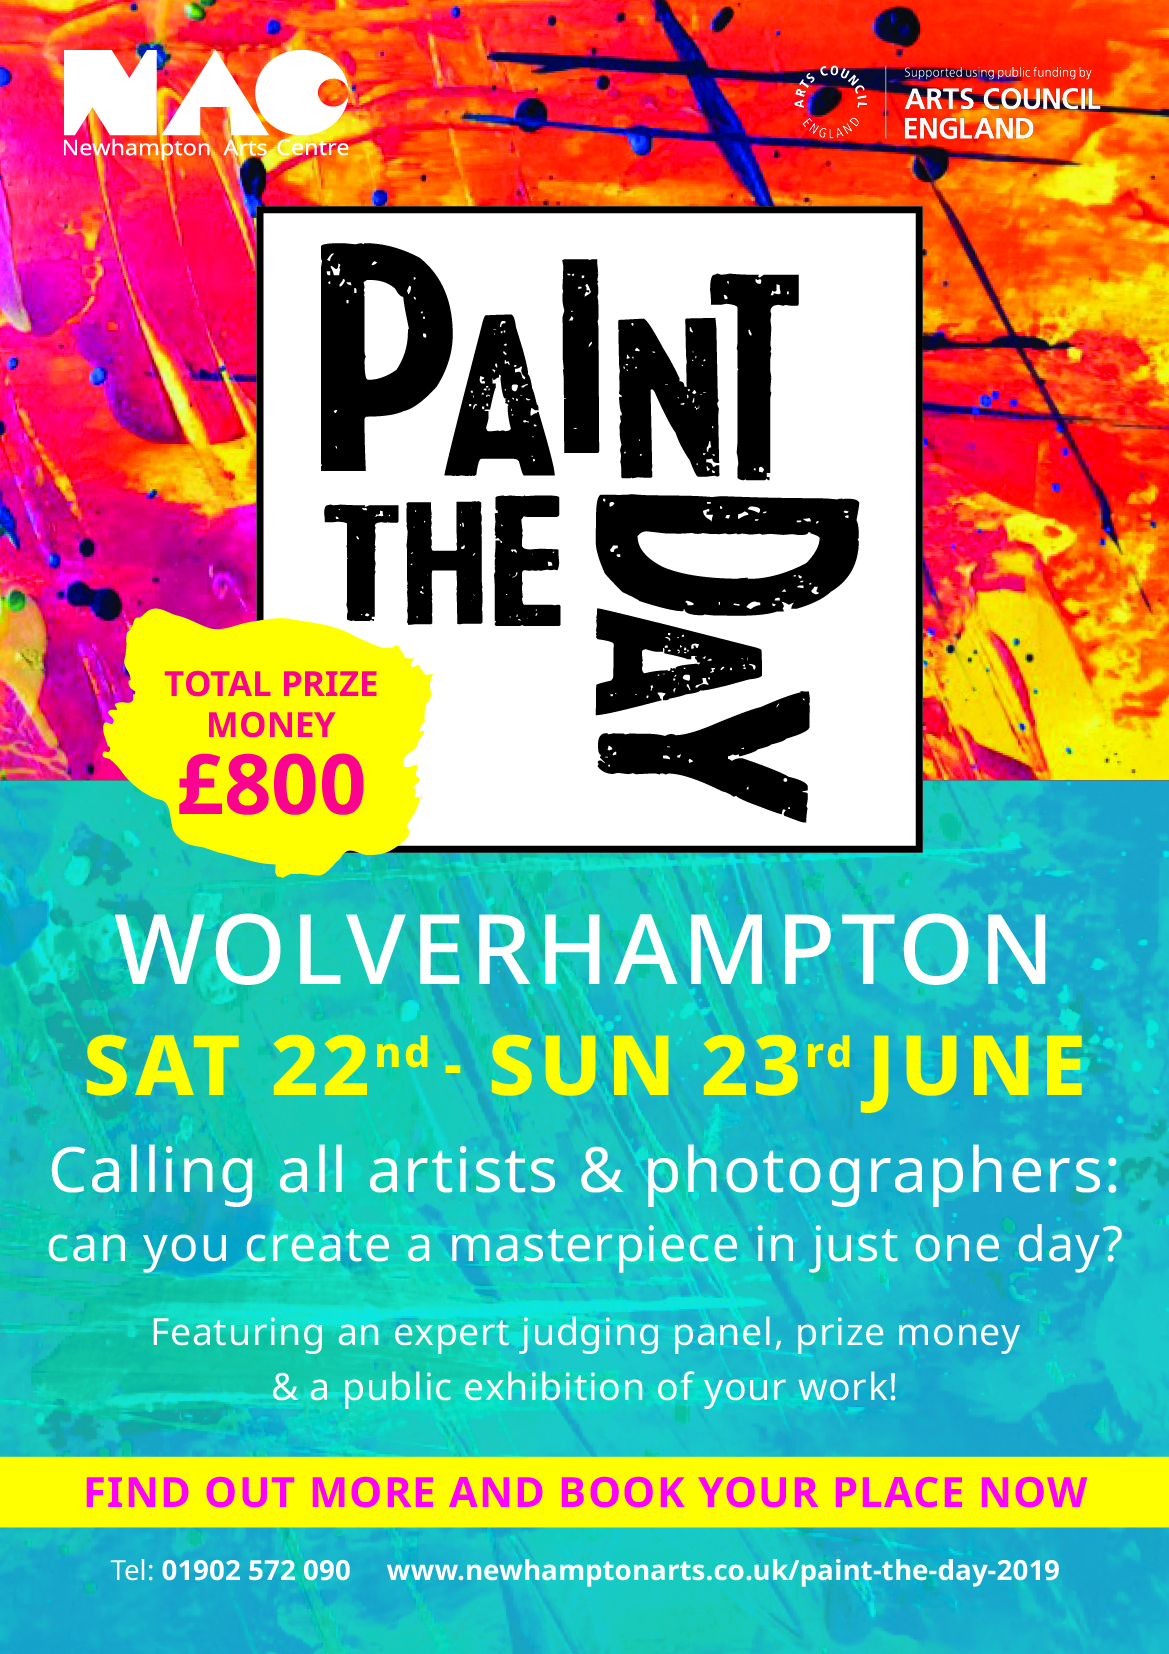 PAINT THE DAY A3 POSTER 2019_PRESS.jpg